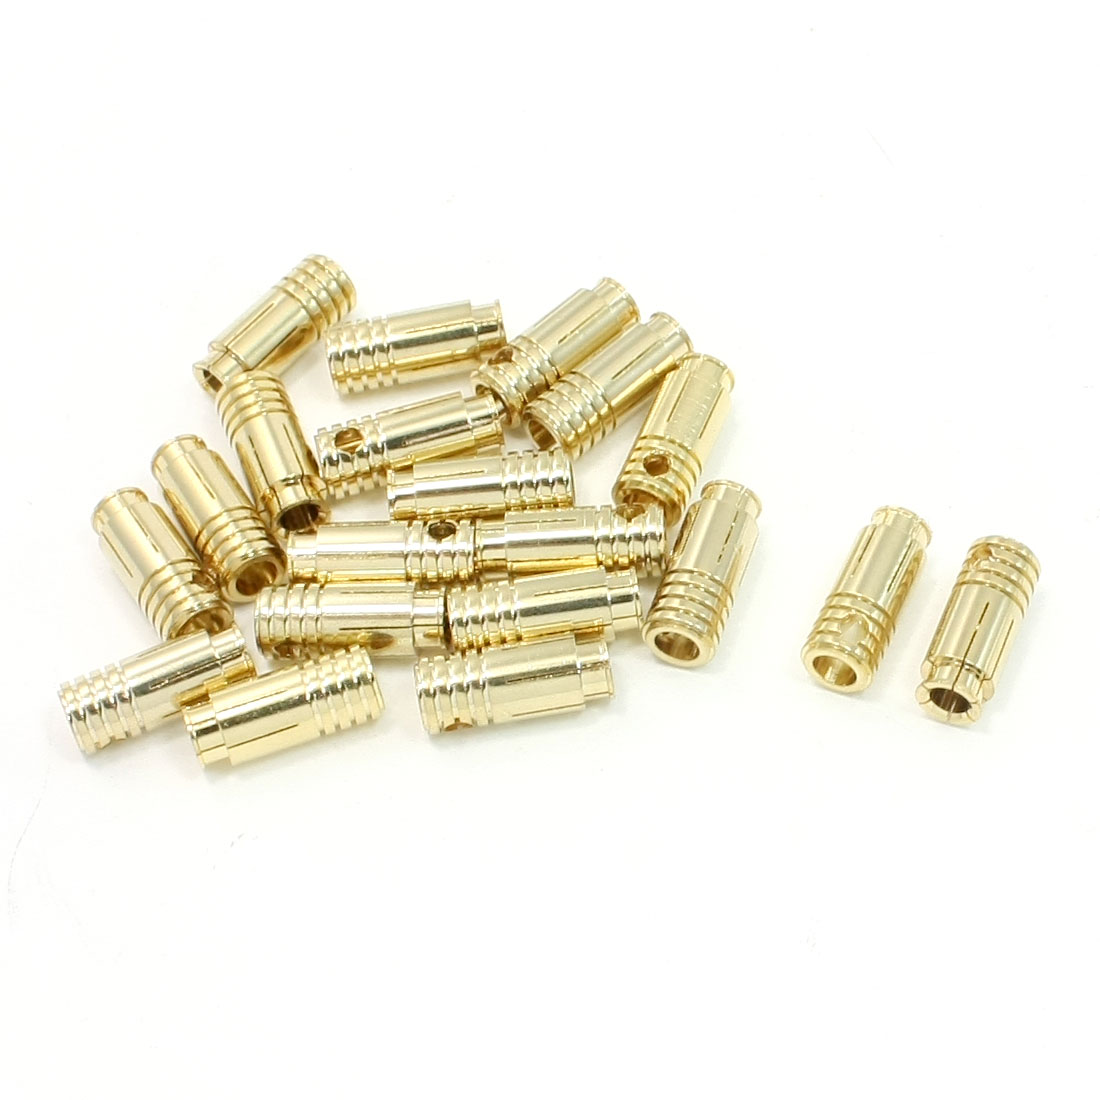 20 Pcs Gold Tone 6.5mm Female Banana Bullet Linking Connectors